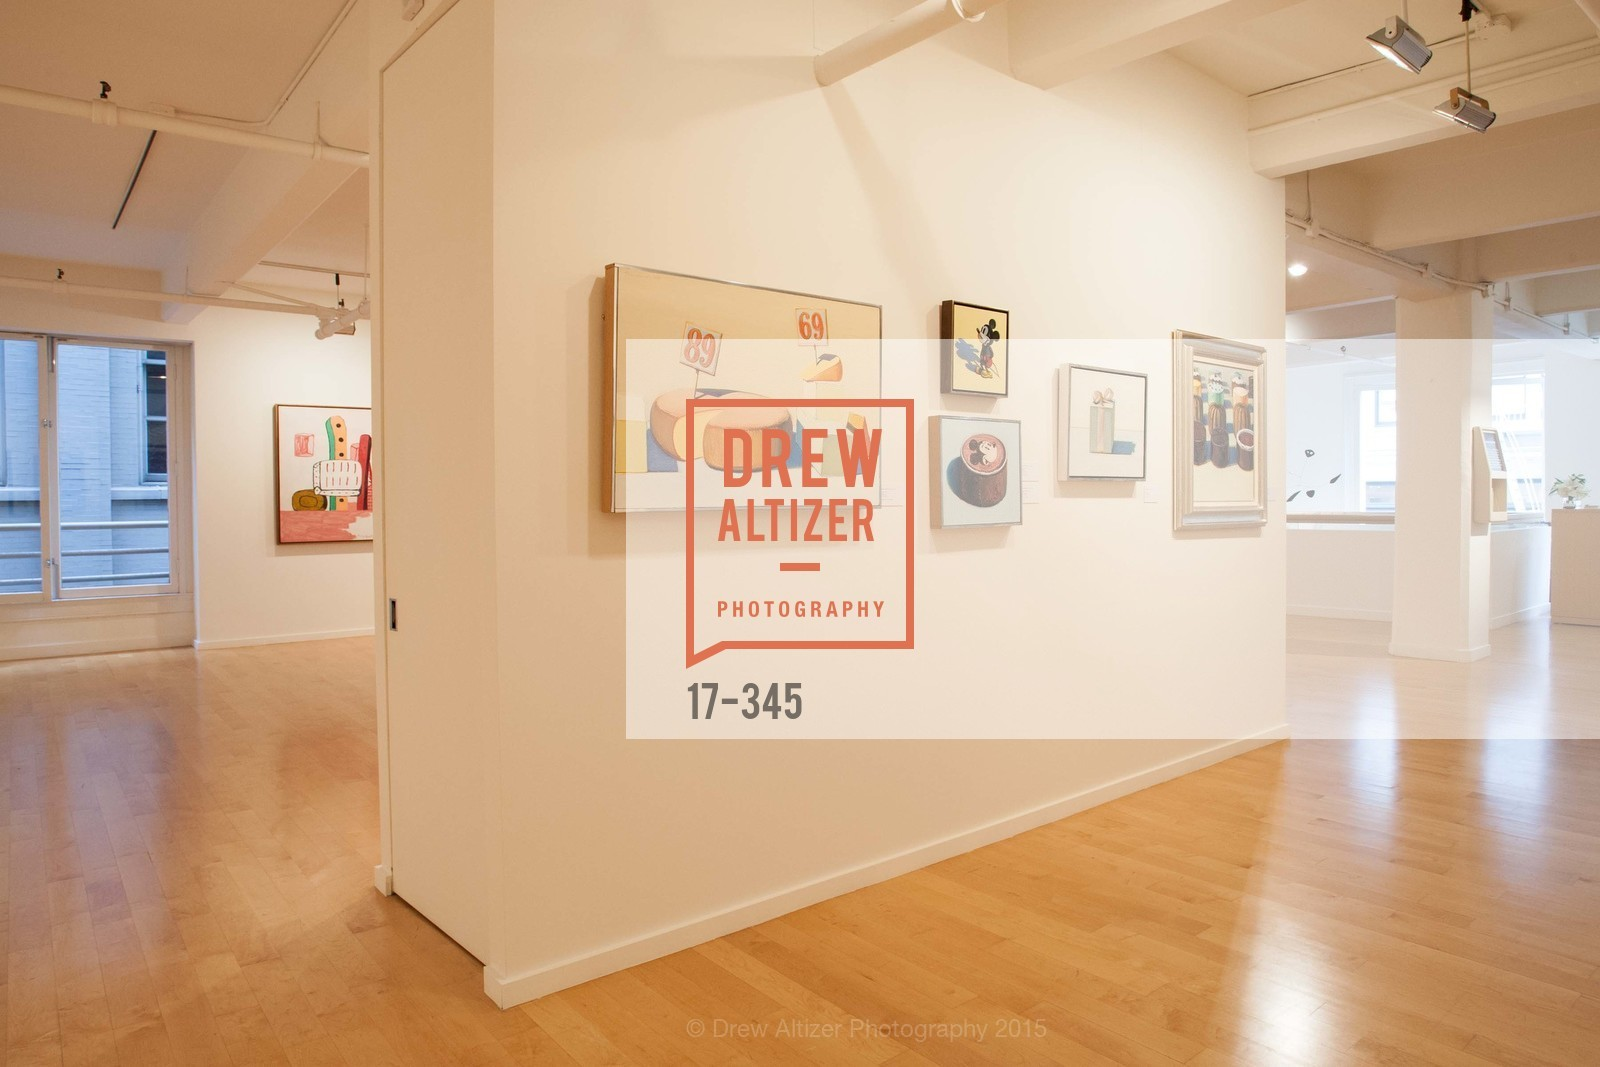 Atmosphere, John Berggruen Gallery presents